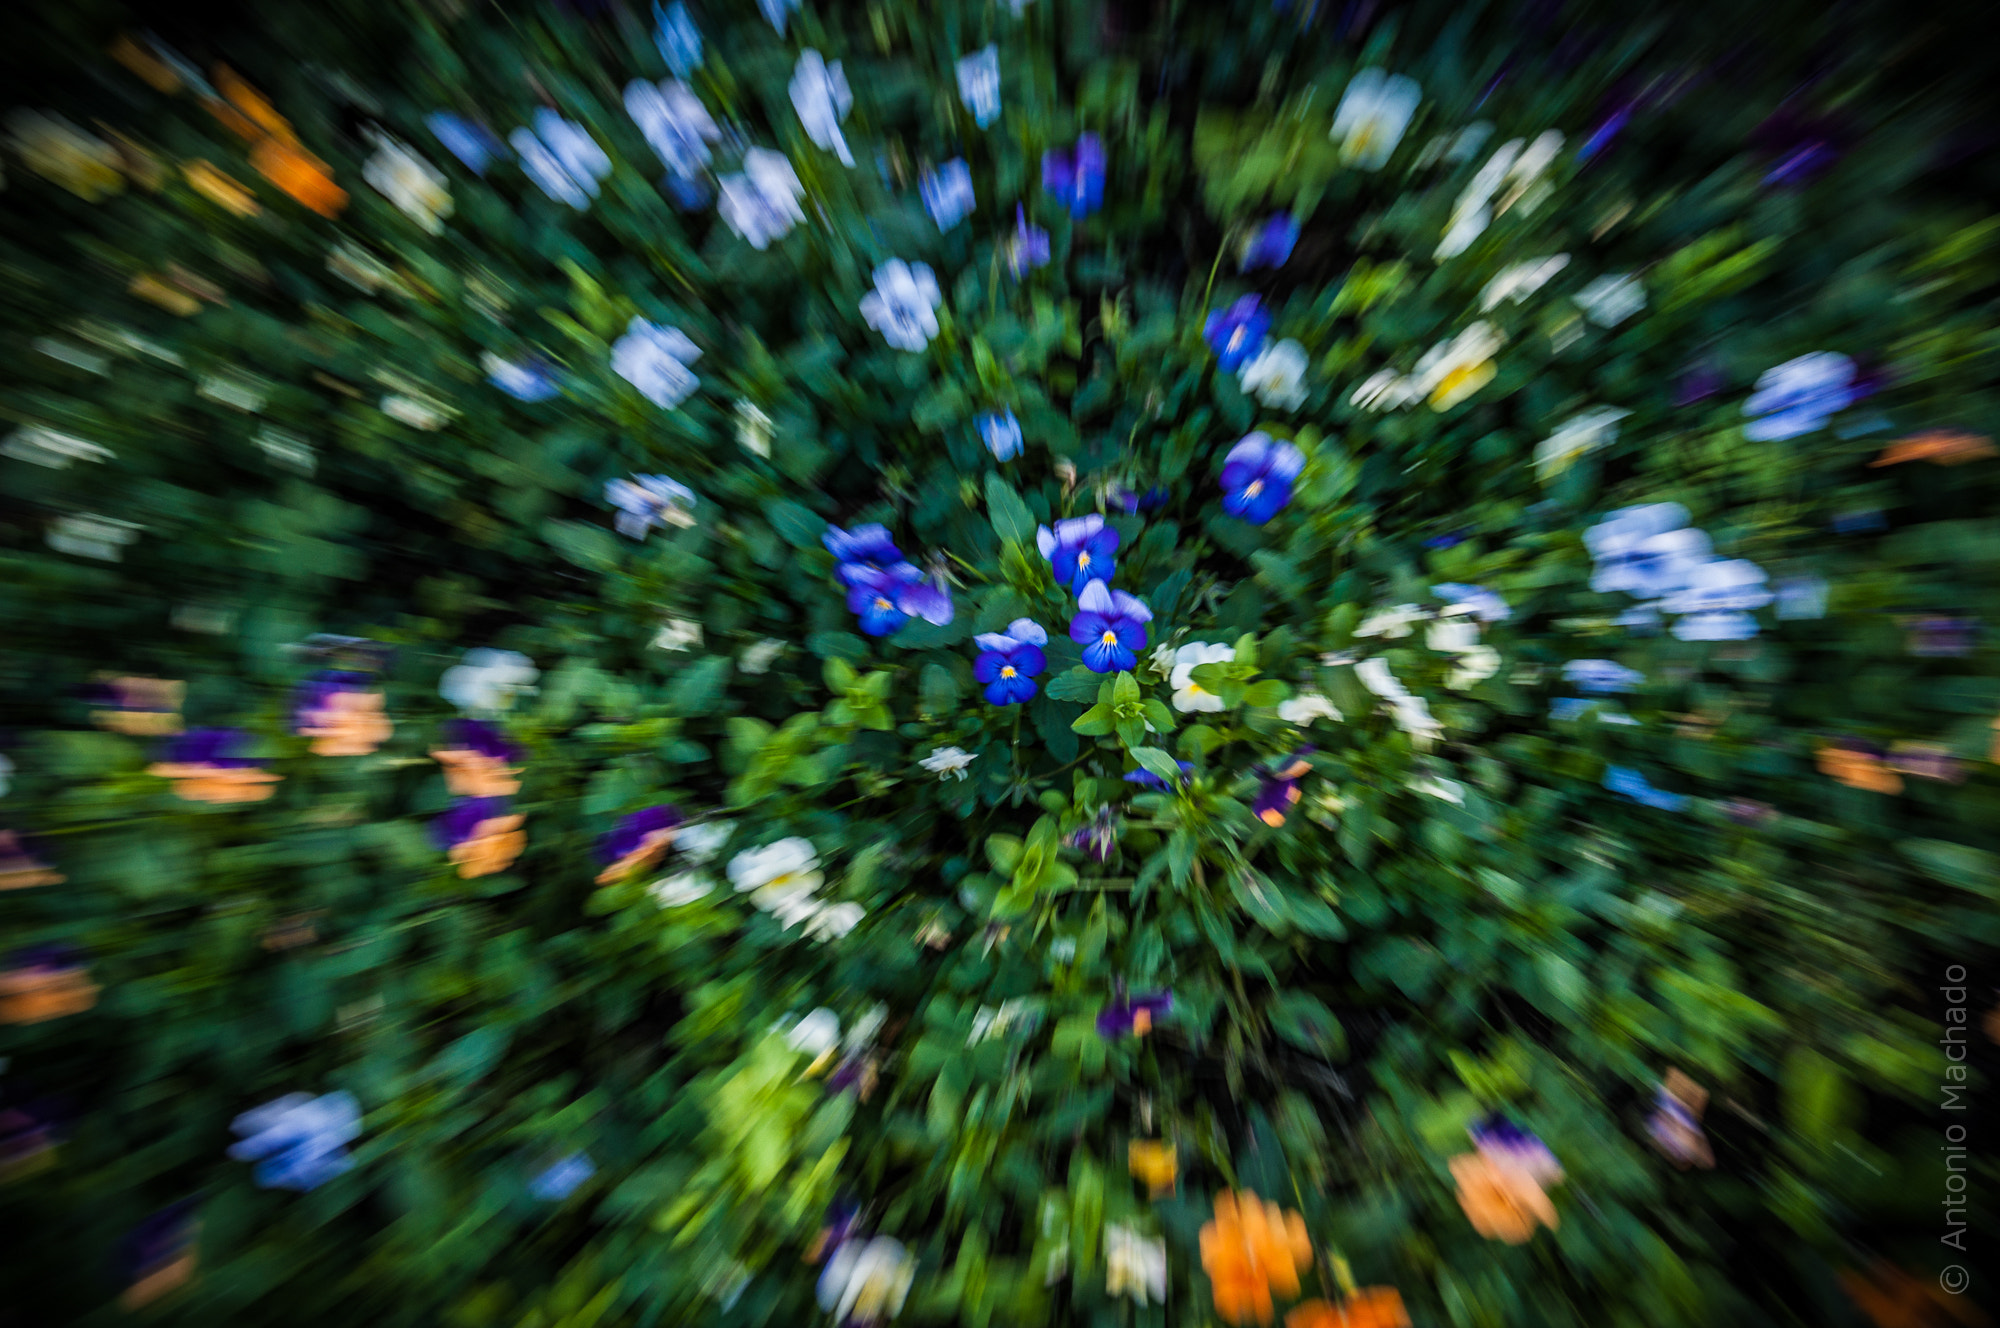 Photograph Flowers in motion by Antonio Machado on 500px